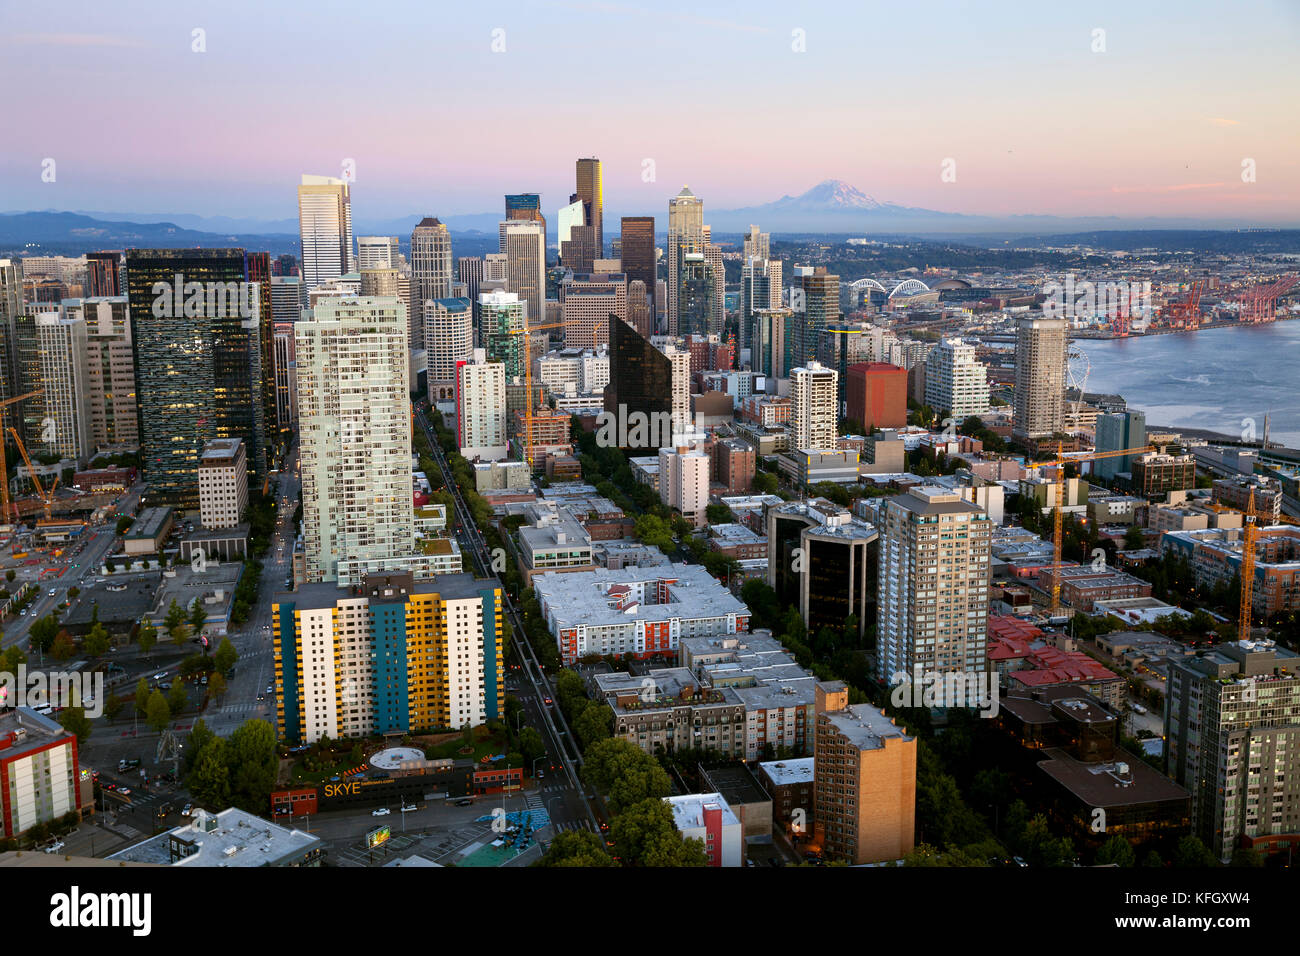 WA14151-00...WASHINGTON - View of Seattle and Mount Rainier from the observation deck of the Space Needle in the - Stock Image